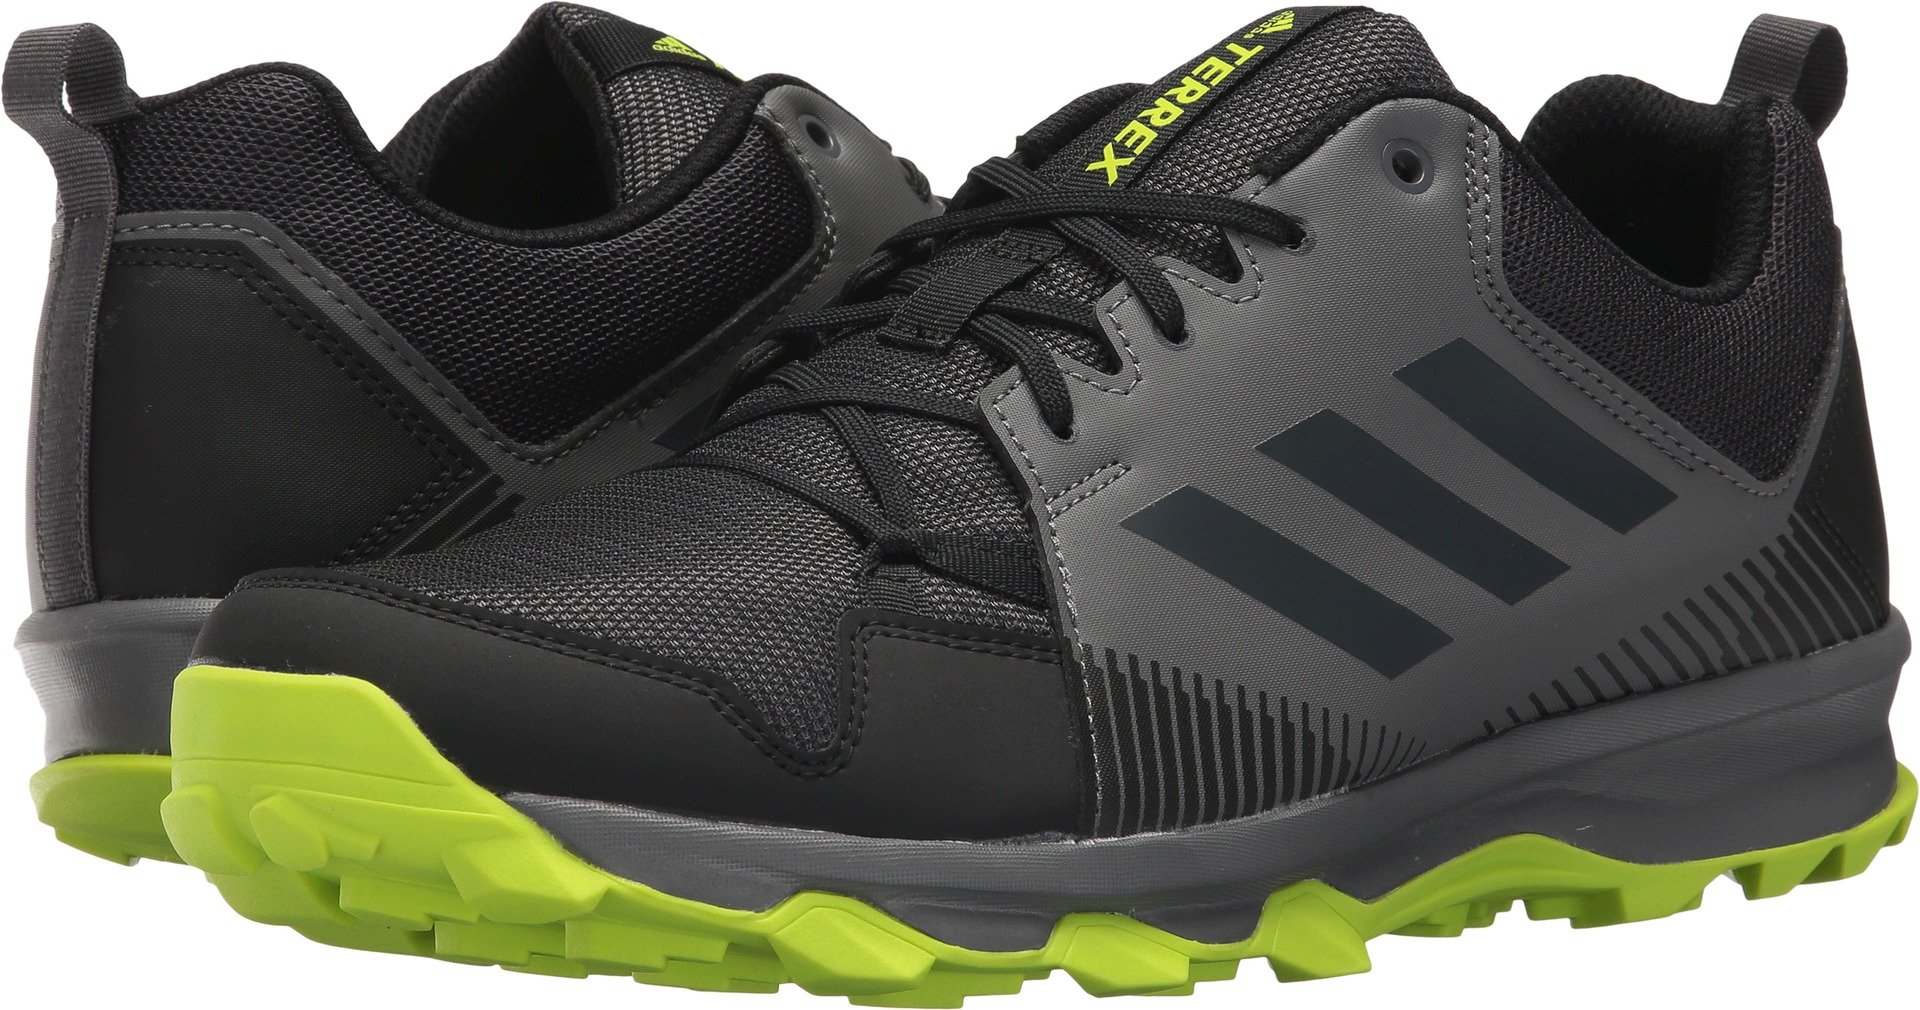 adidas outdoor Men's Terrex Tracerocker Trail Running Shoe, Black/Carbon/Grey Four, 7 D US by adidas outdoor